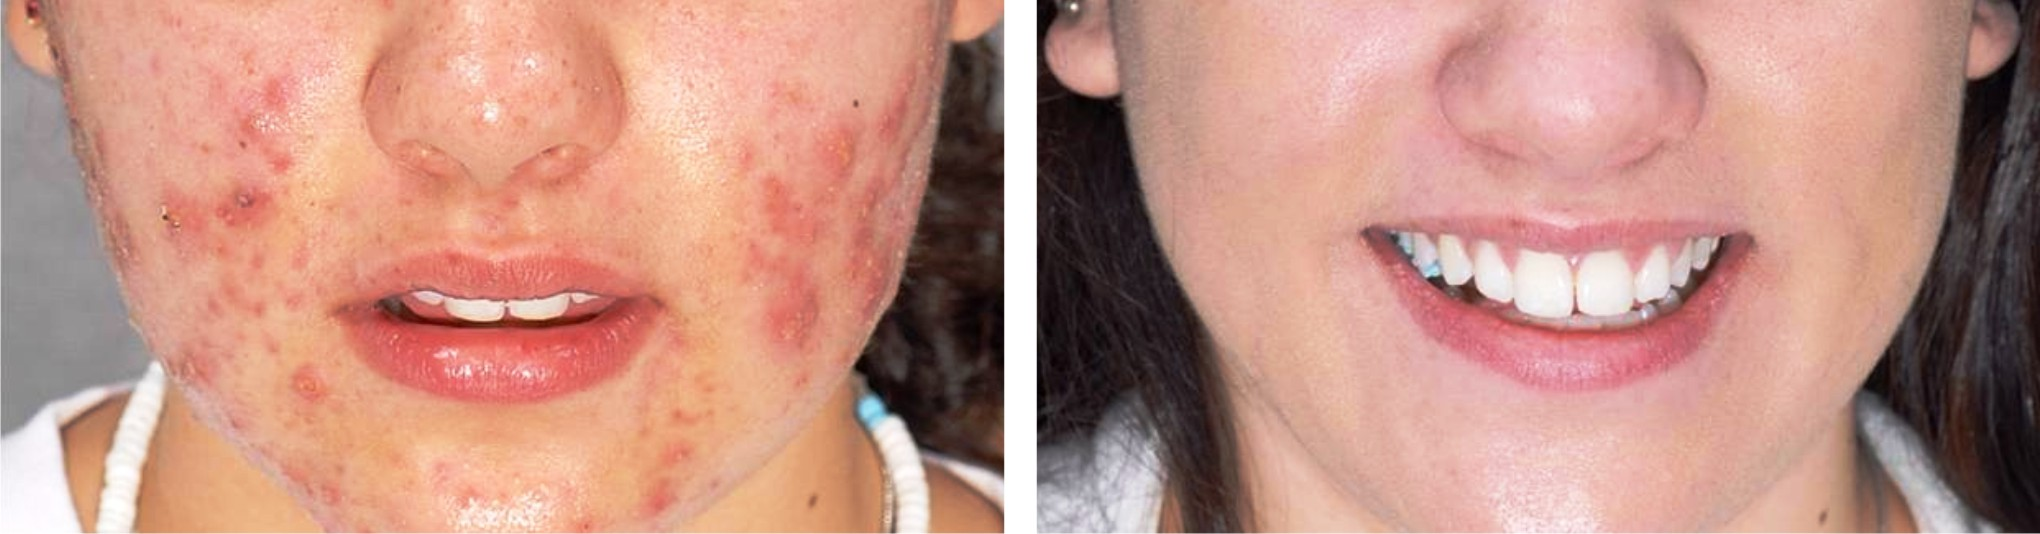 Laser Acne Scar Removal Image One